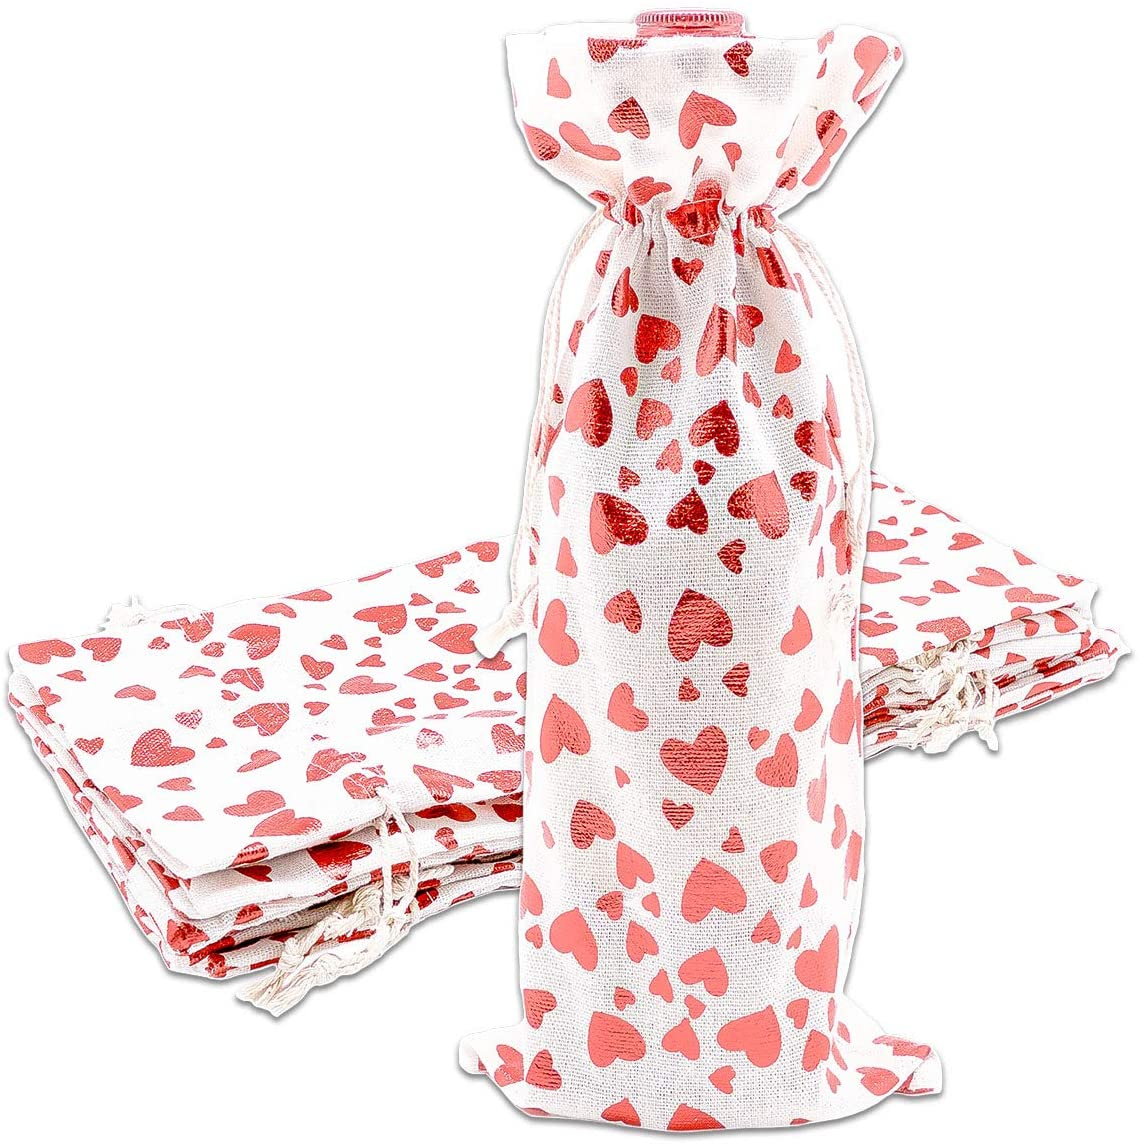 12pk Cotton Canvas Muslin Bottle & Wine Gift Bags with Drawstring (Red Hearts, 6 x 14) for Storage, Holiday Parties, Promotional Events by TheDisplayGuys